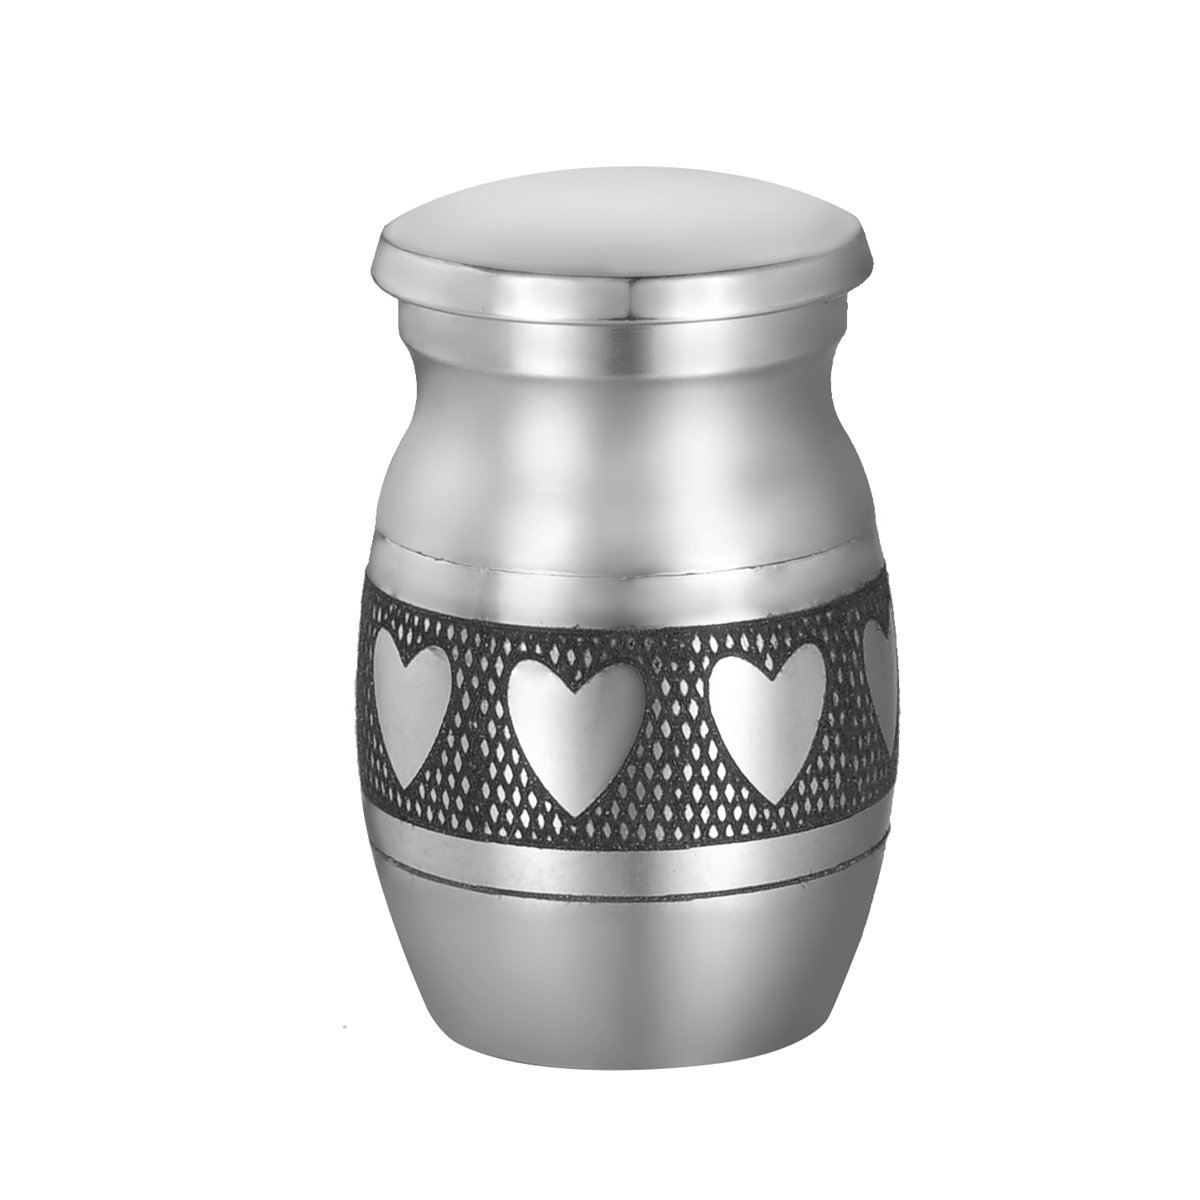 Tiny Small Cremation Urn For Human or Pet Ashes Waterproof Memory Funeral Keepsake Stainless Steel (Tree of Life) VALYRIA VALYRIAWBB97949